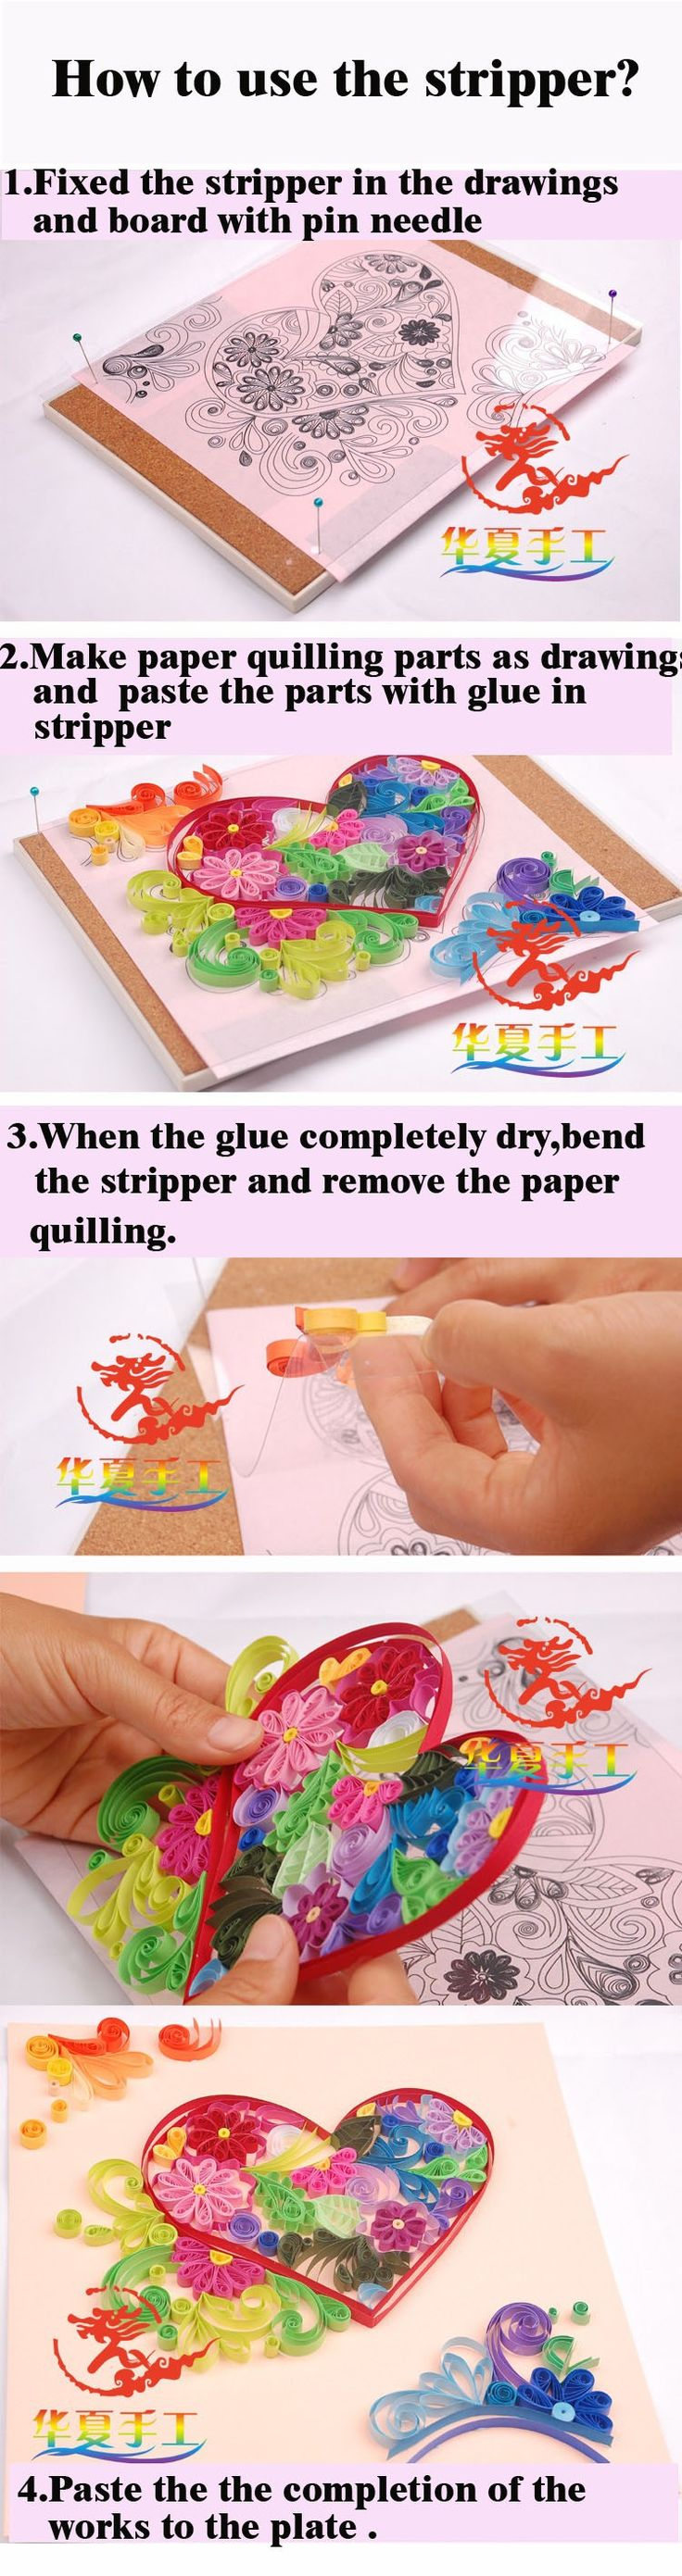 DIY Scrapbooking Paper Quilling Tools set,stripper/co ordinate/14 pcs Paper Quilling drawings Collection Photo Cards Decoration-in Paper Crafts from Home & Garden on Aliexpress.com | Alibaba Group